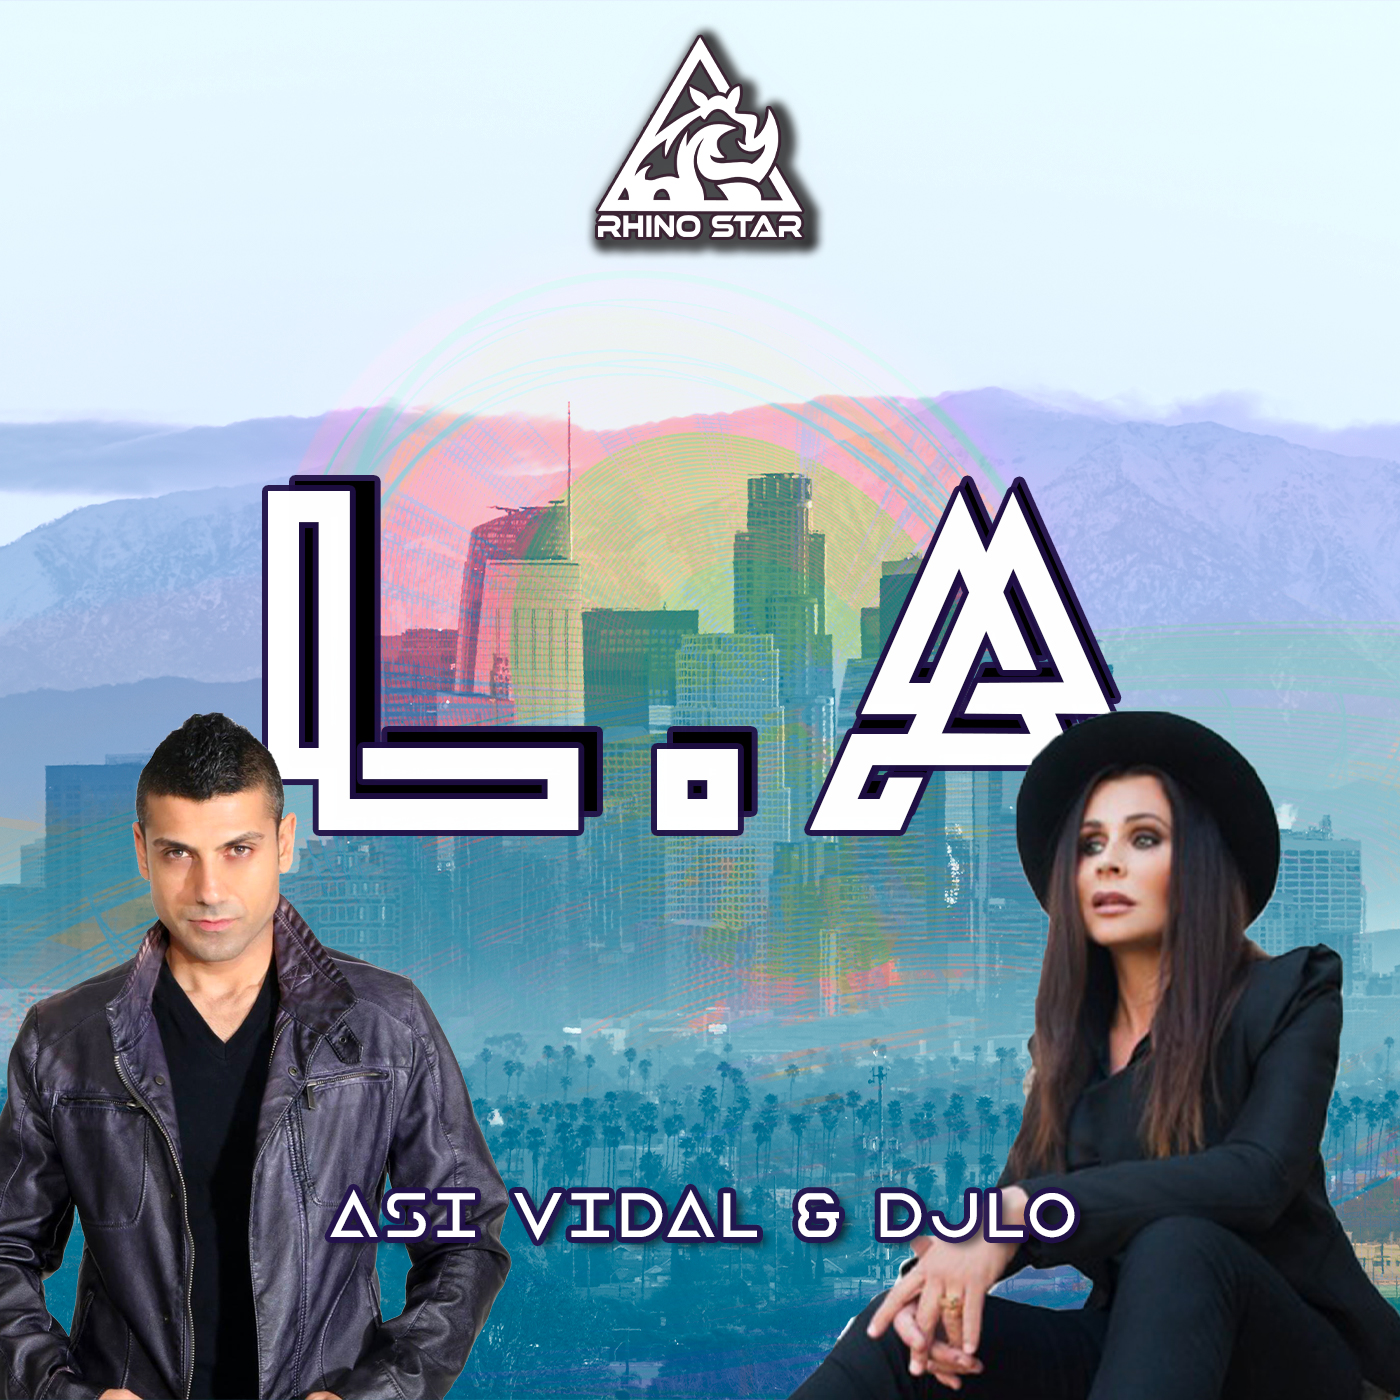 """International DJs, Asi Vidal and DJLO teams up for an immense debut on Rhino Star Records titled """"L.A."""" featuring anthemic, EDM-flavored vocals and brass-inspired synth leads."""